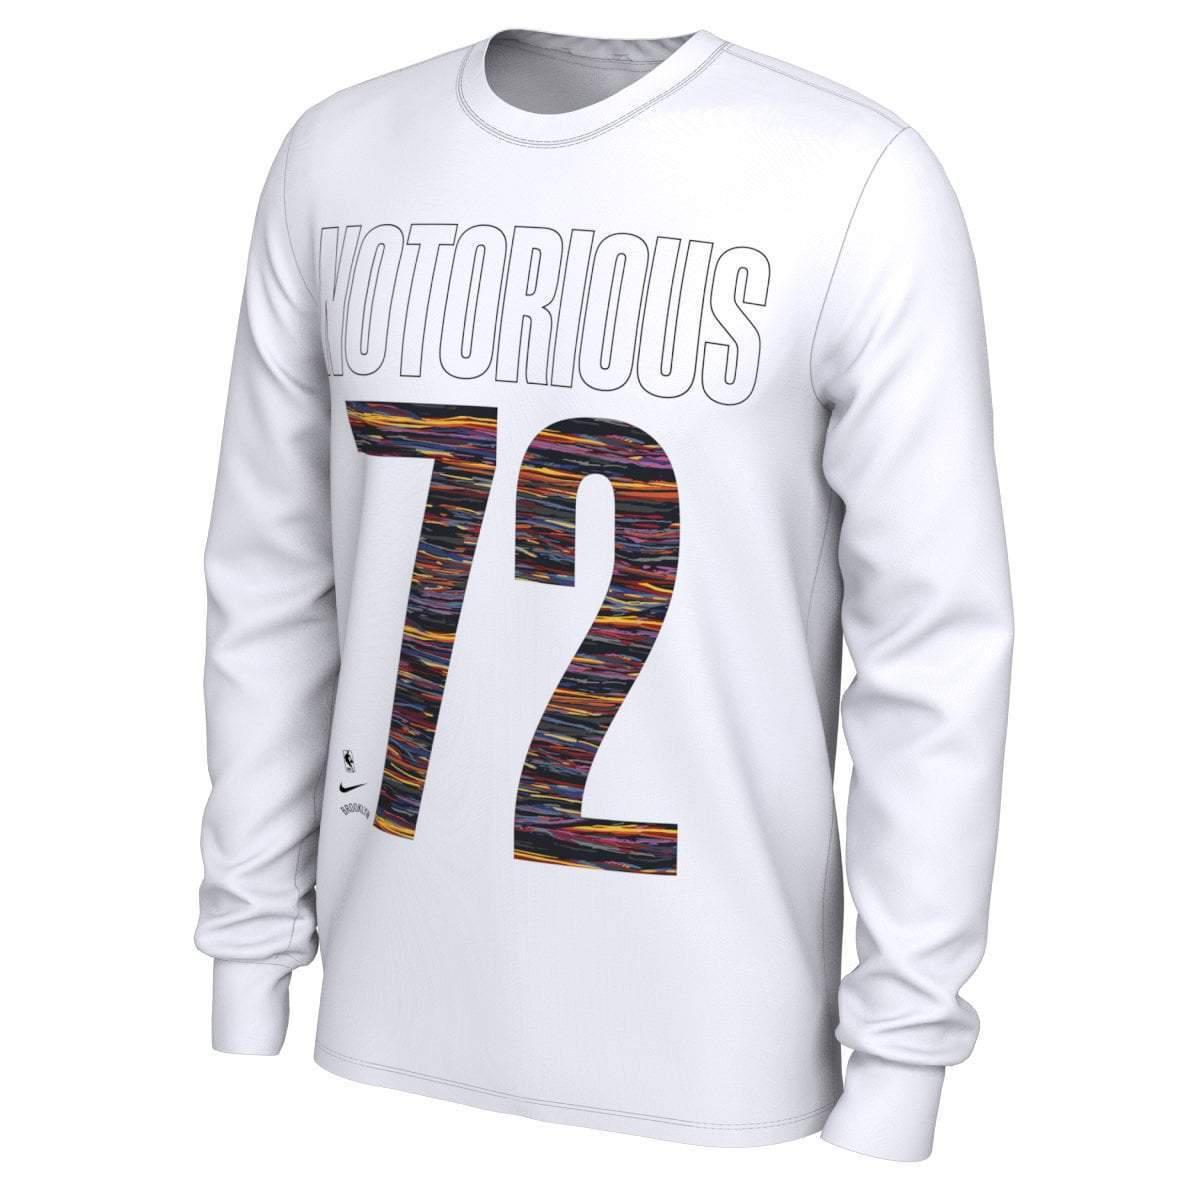 a628c1835da0 Nike Long Sleeve Tees WHT   S Brooklyn Nets Nike Music Collection Notorious   72 Graphic